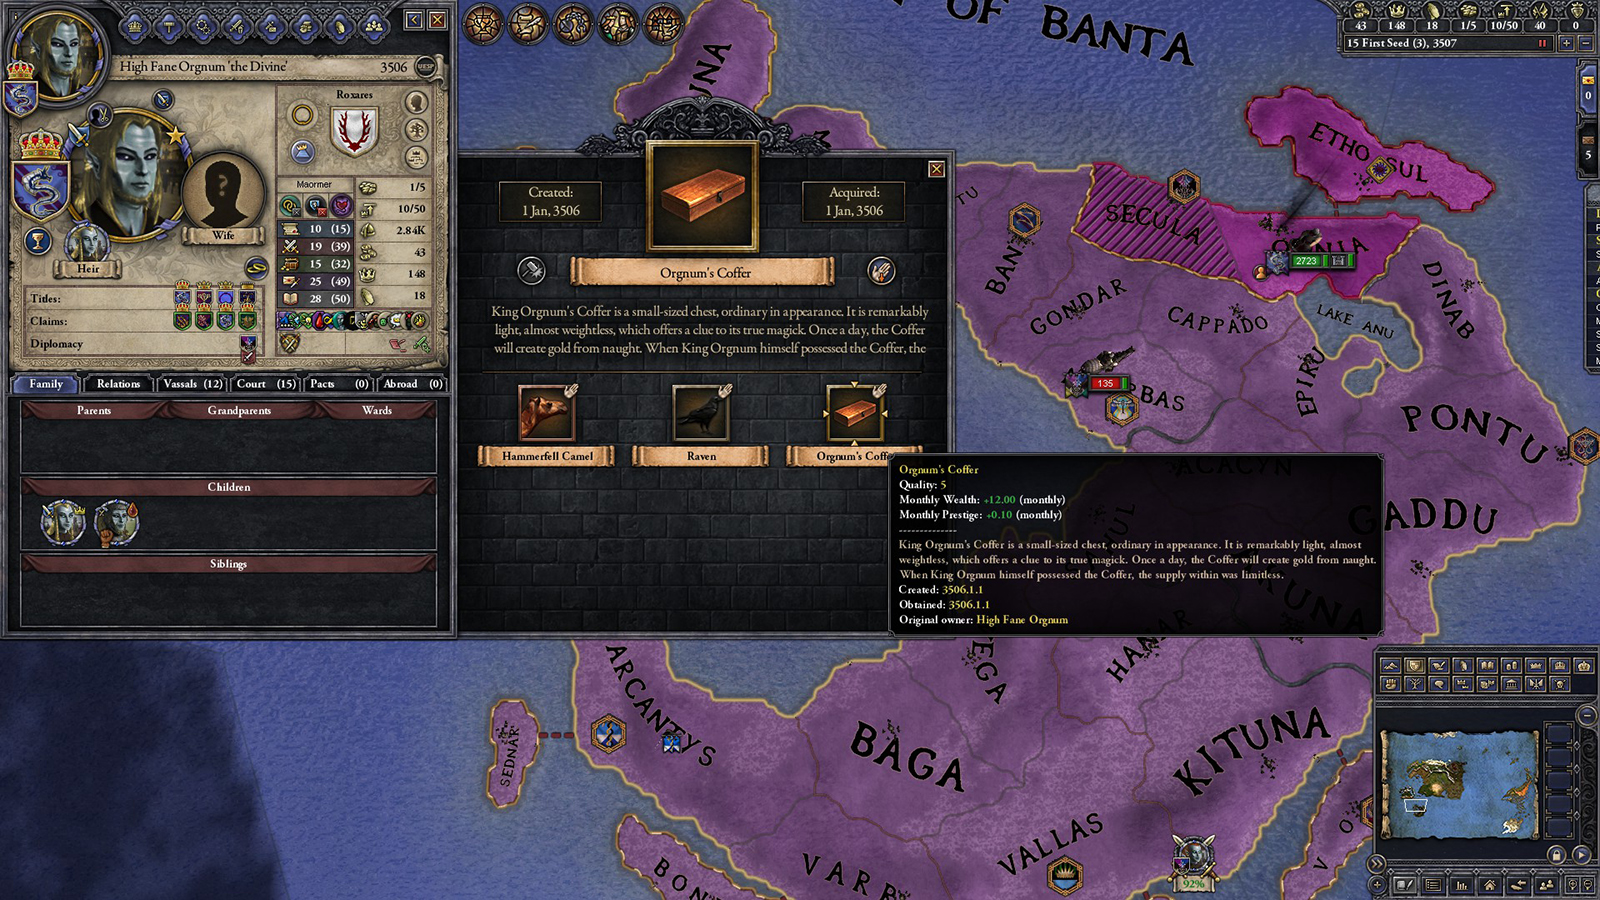 Elder Kings, The Elder Scrolls Total Conversion for Crusader Kings 2